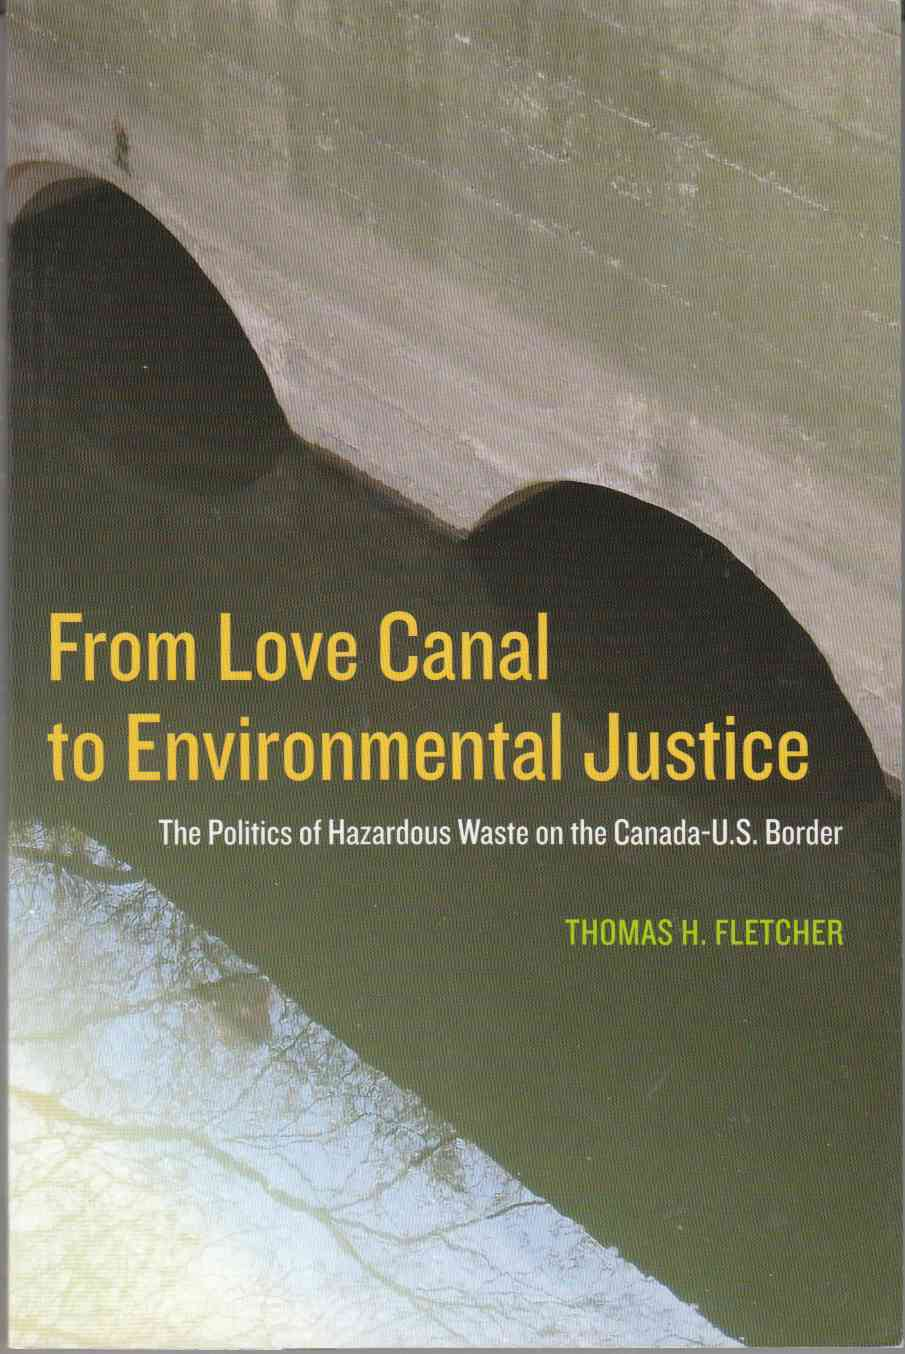 Image for From Love Canal to Environmental Justice The Politics of Hazardous Waste on the Canada - U. S. Border